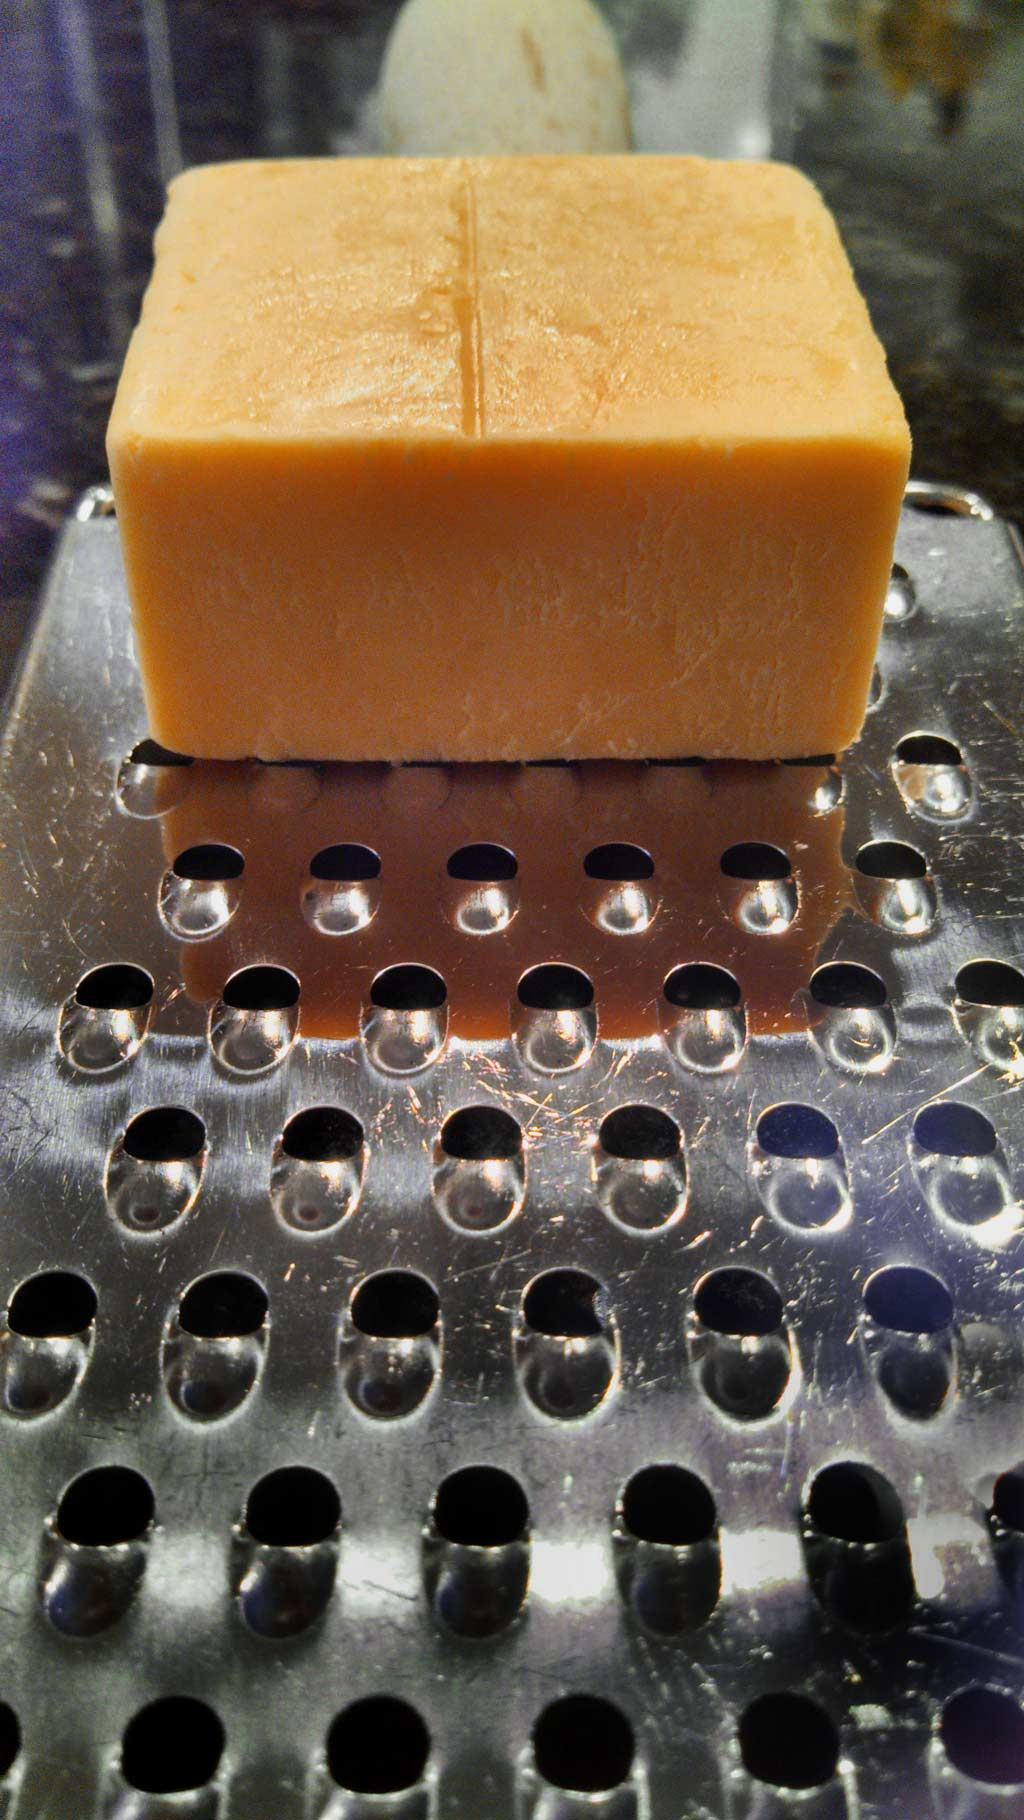 To make your cheese grating easier, spray your cheese grater down with a little non-stick cooking spray before you get started Great tip that saves time!